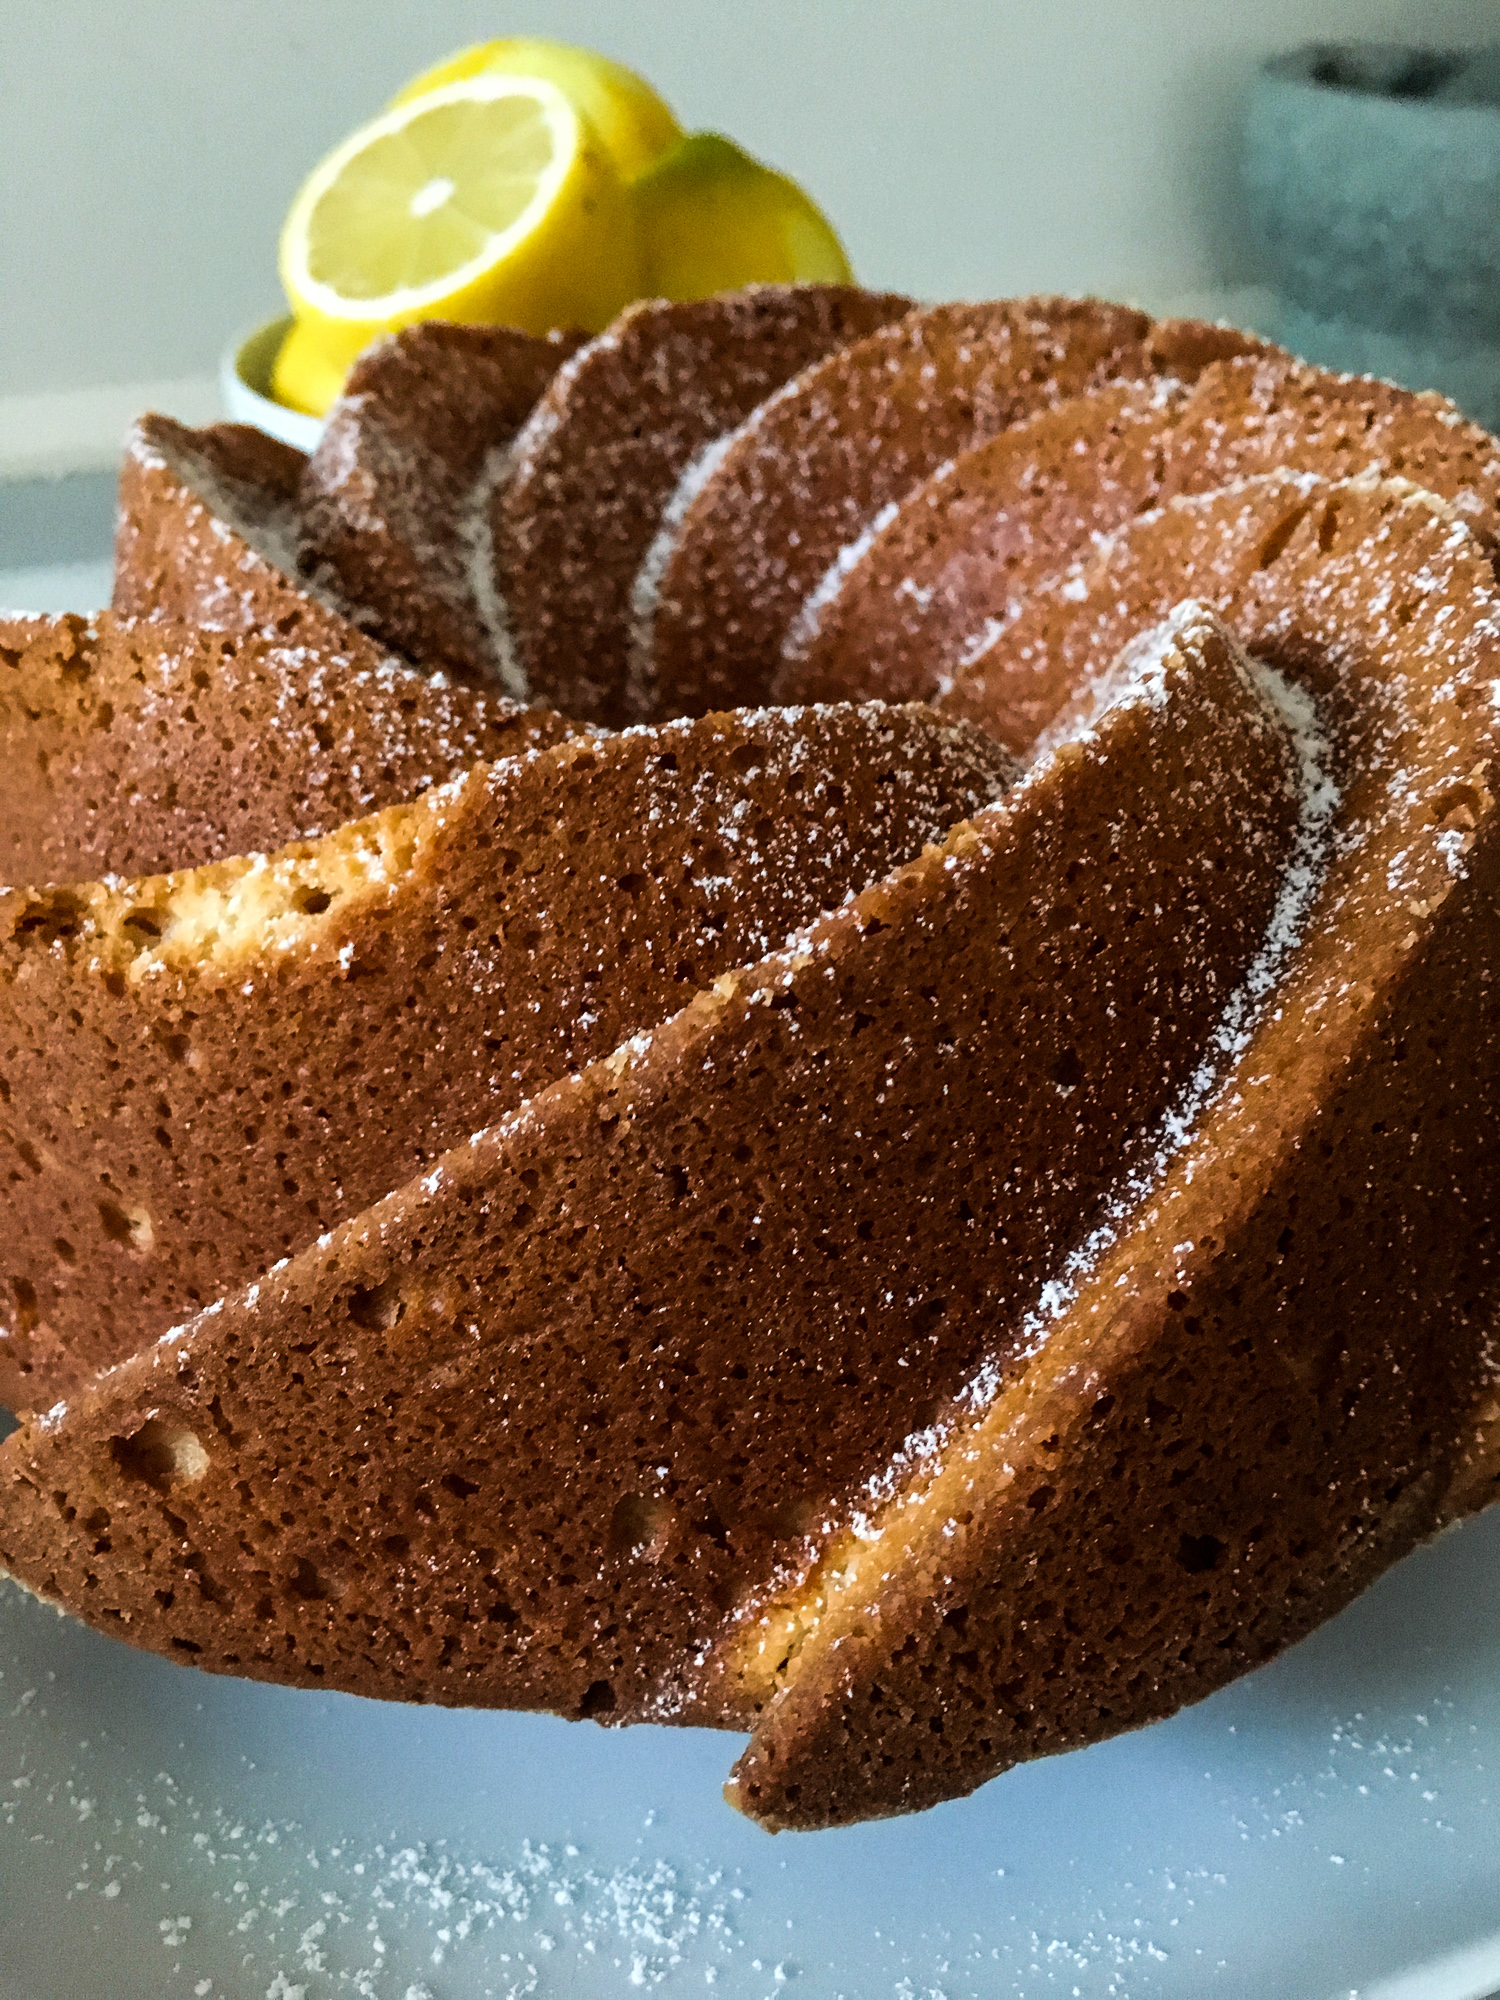 Ricotta cake dusted